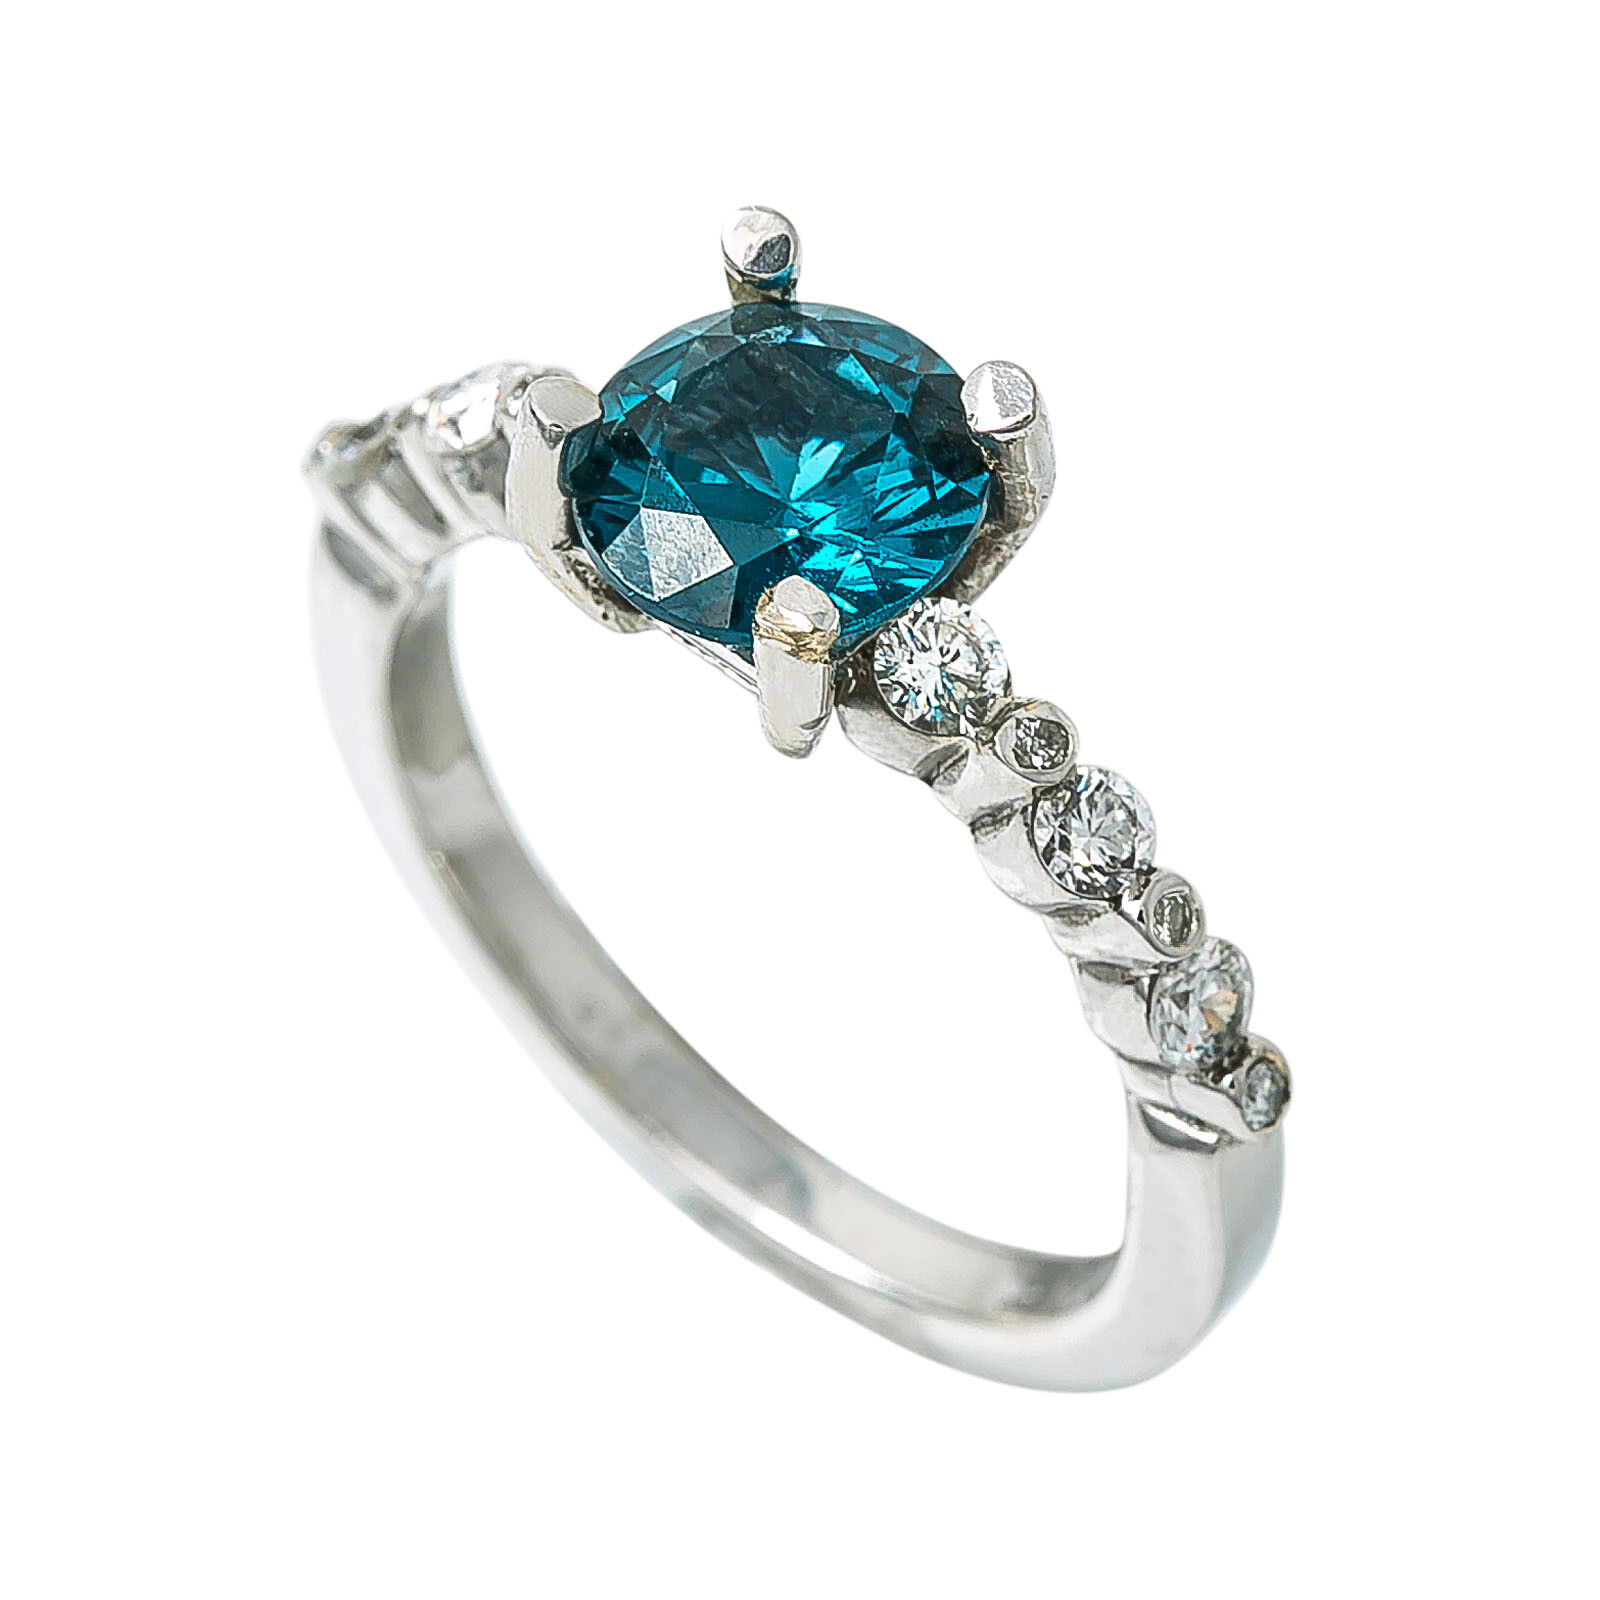 14K White gold 0.80 Ct Diamond Man made bluee Sapphire Ring 3.2 Grams Size 6.75